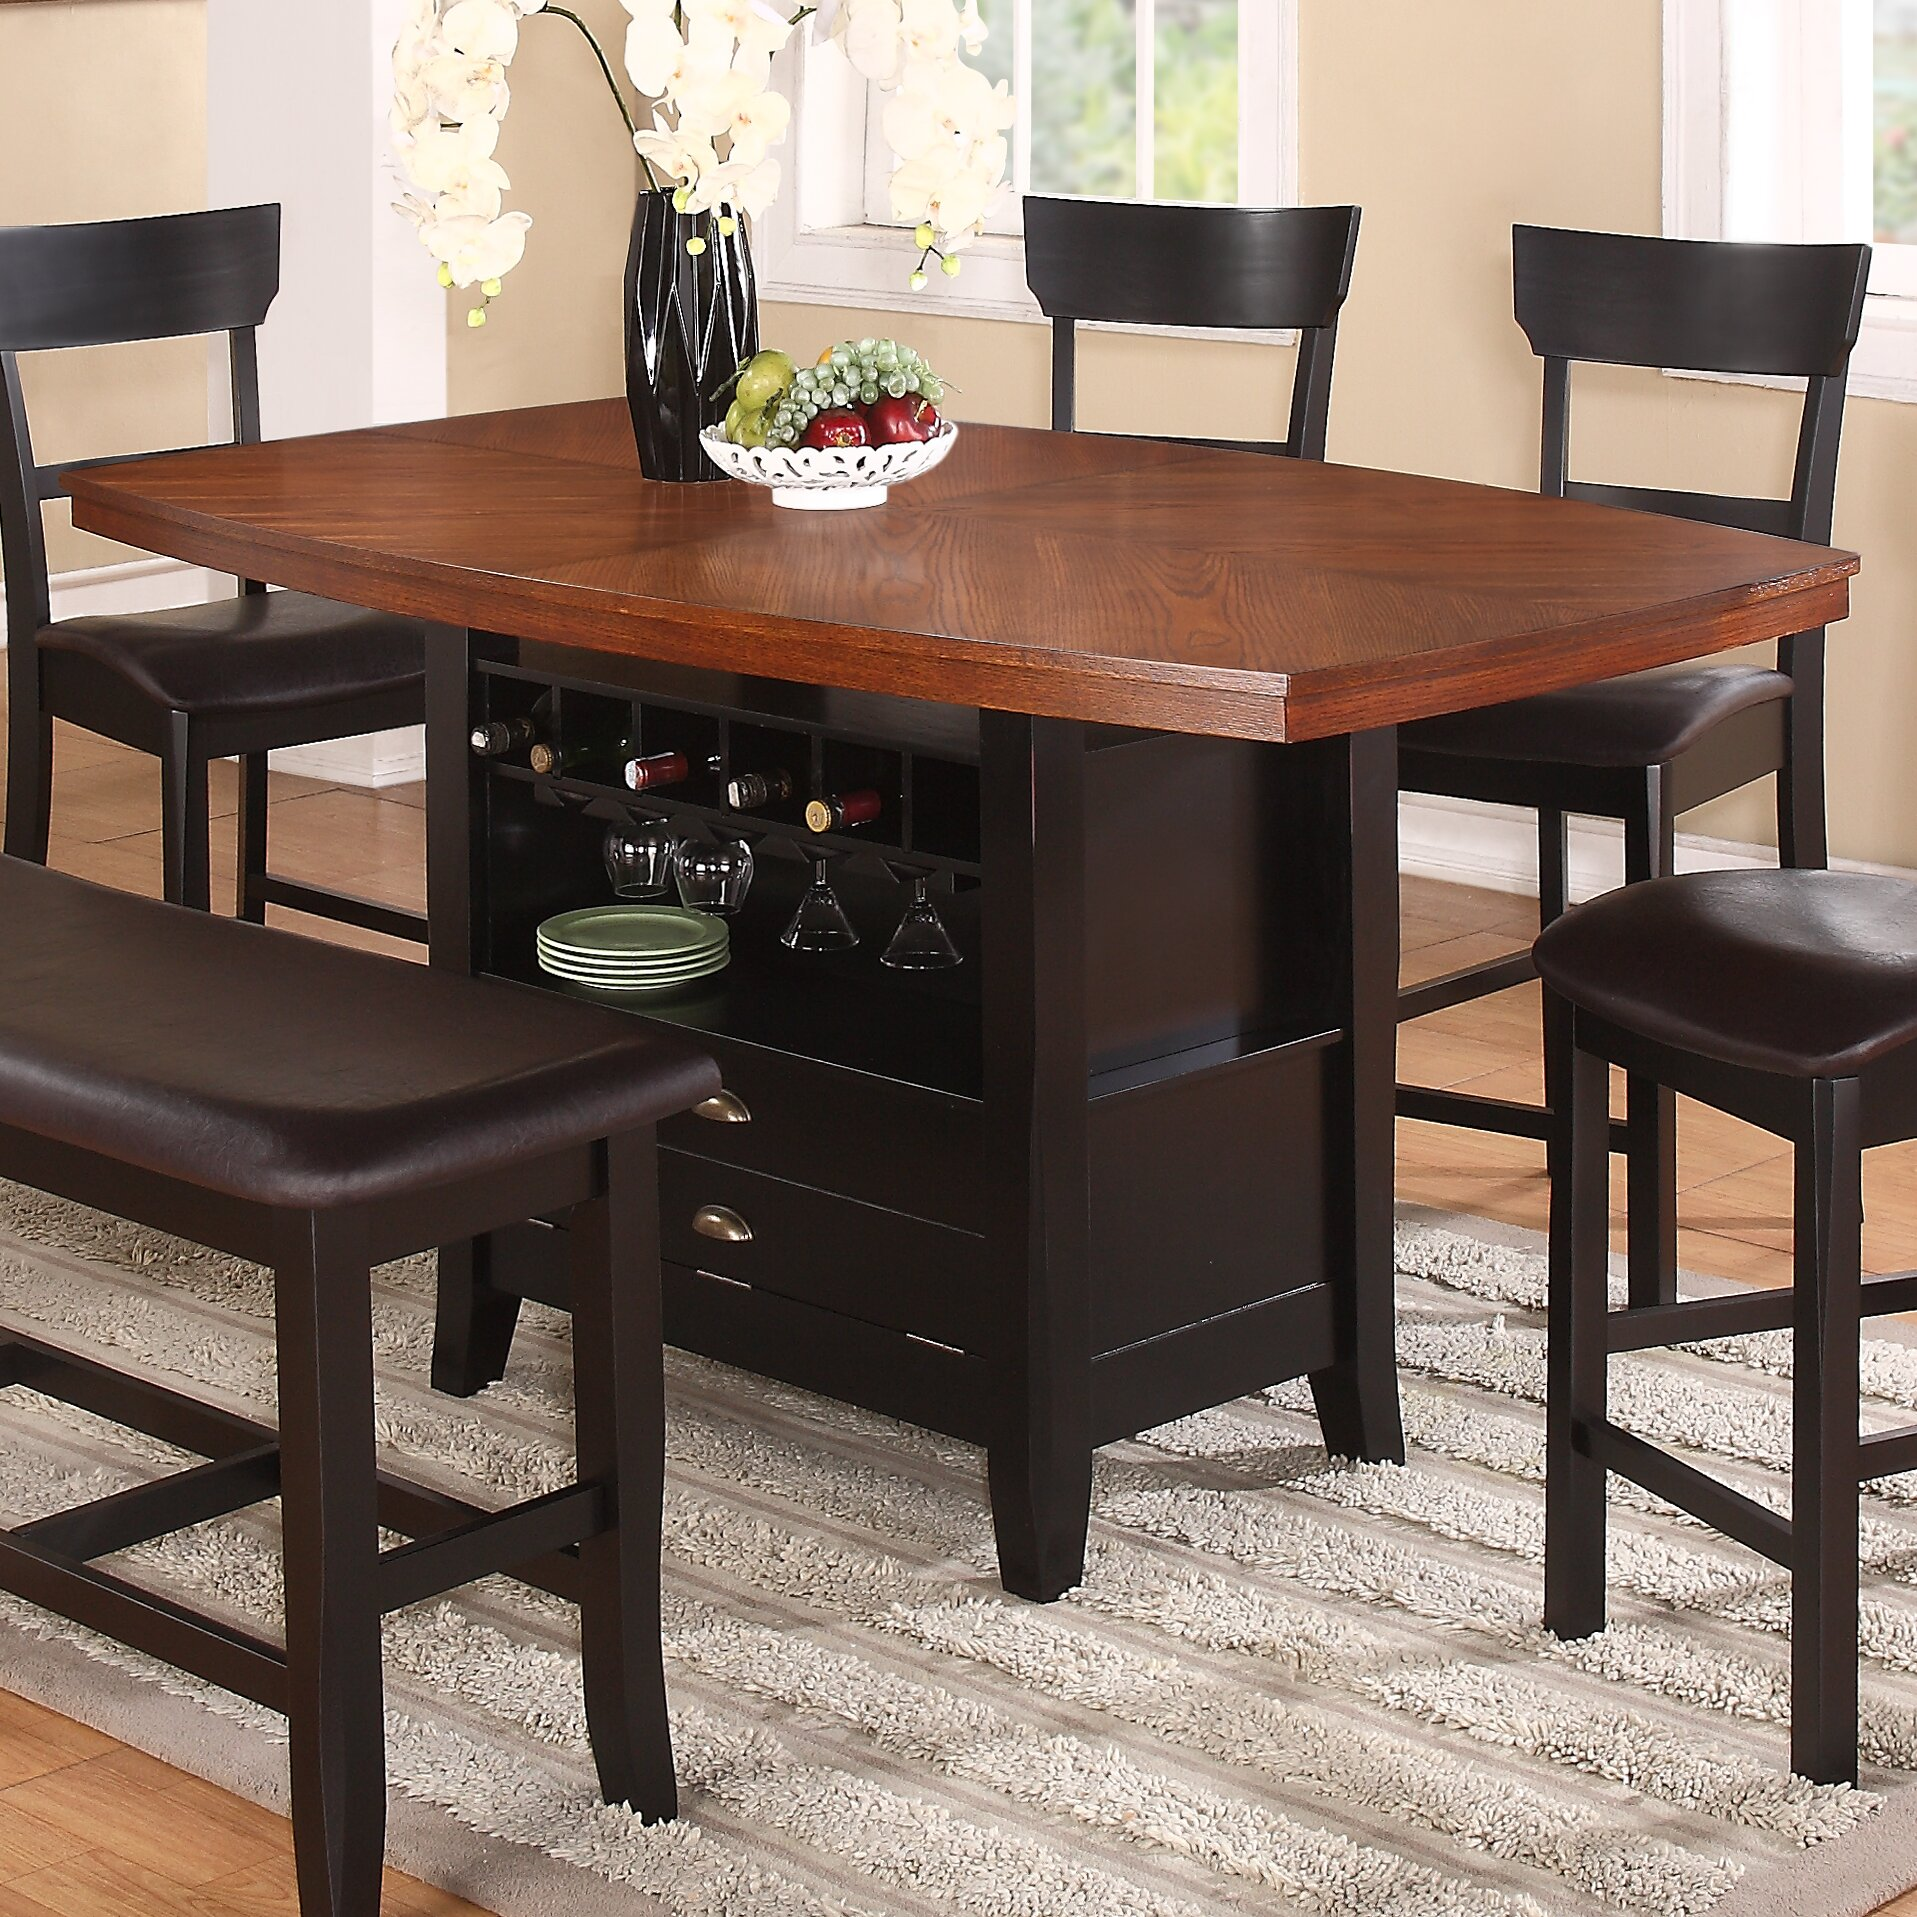 Tall Dining Table: Red Barrel Studio Wachusett Counter Height Dining Table